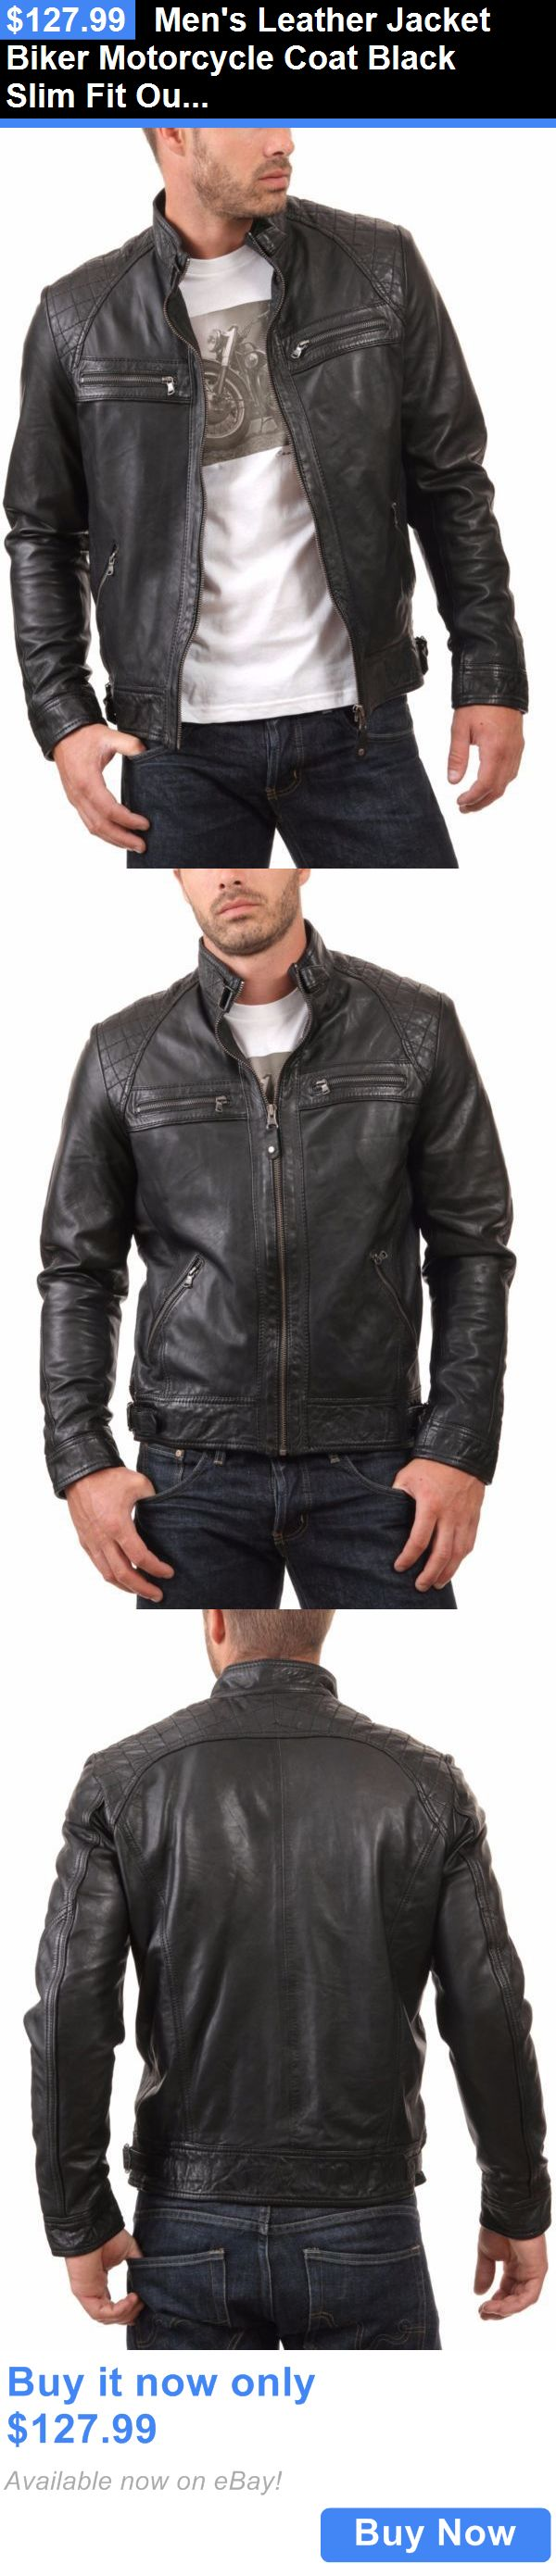 Men Coats And Jackets: Mens Leather Jacket Biker Motorcycle Coat Black Slim Fit Outwear Jackets - 32 BUY IT NOW ONLY: $127.99